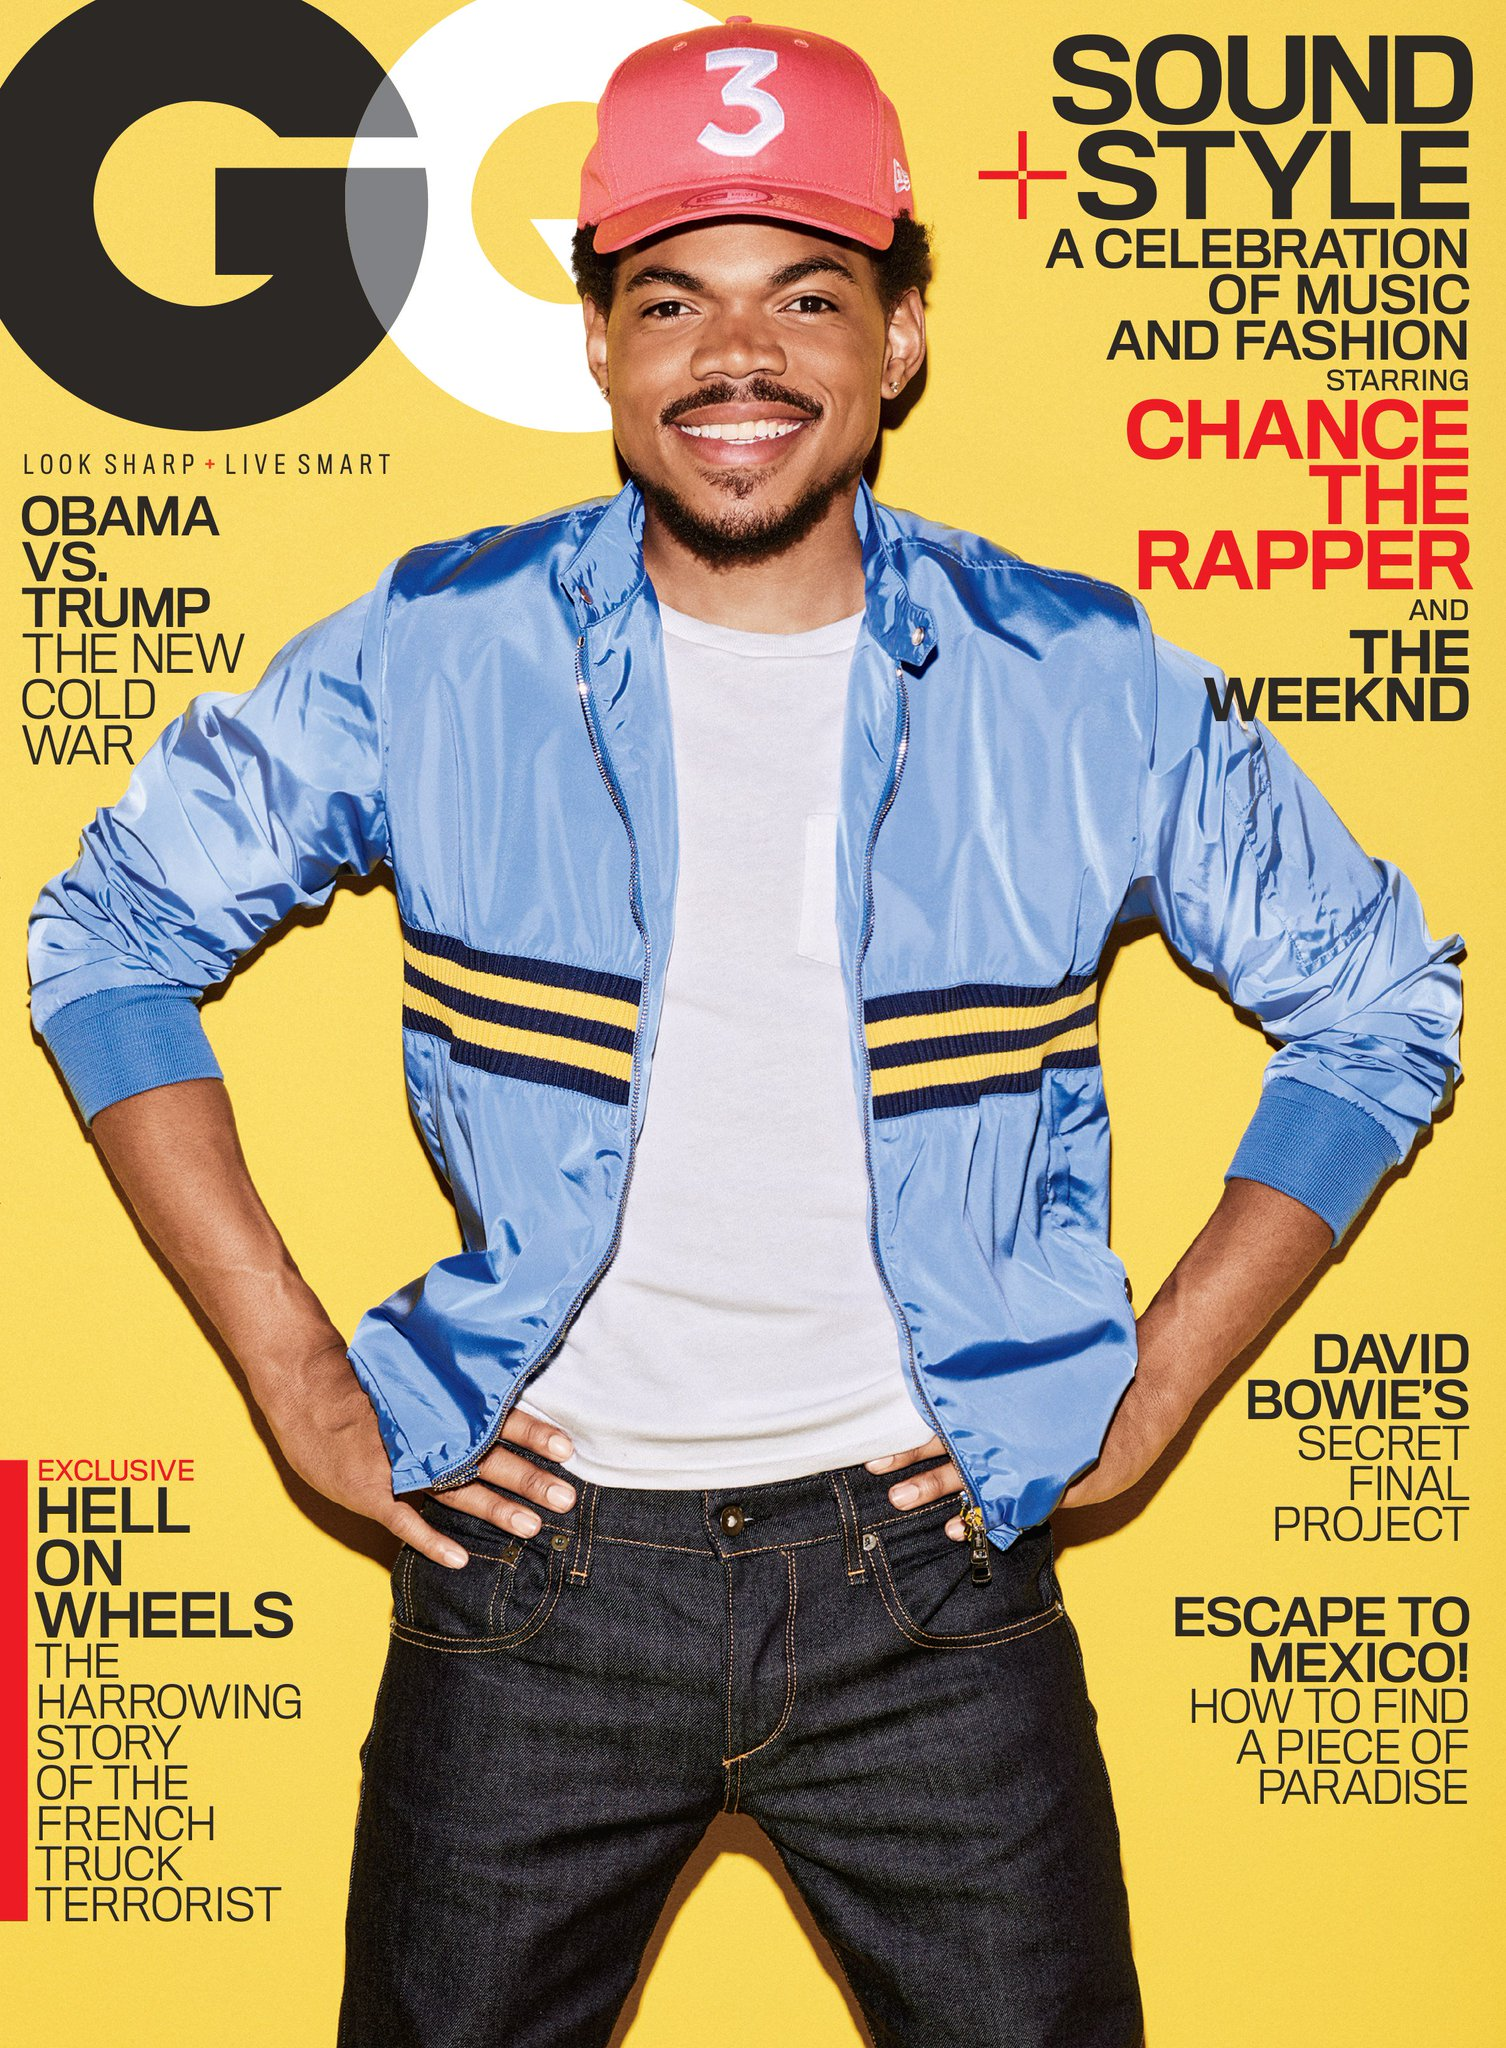 Presenting GQ's newest cover star: @ChanceTheRapper https://t.co/TgOkMA9xel https://t.co/KdzUcQXXDn